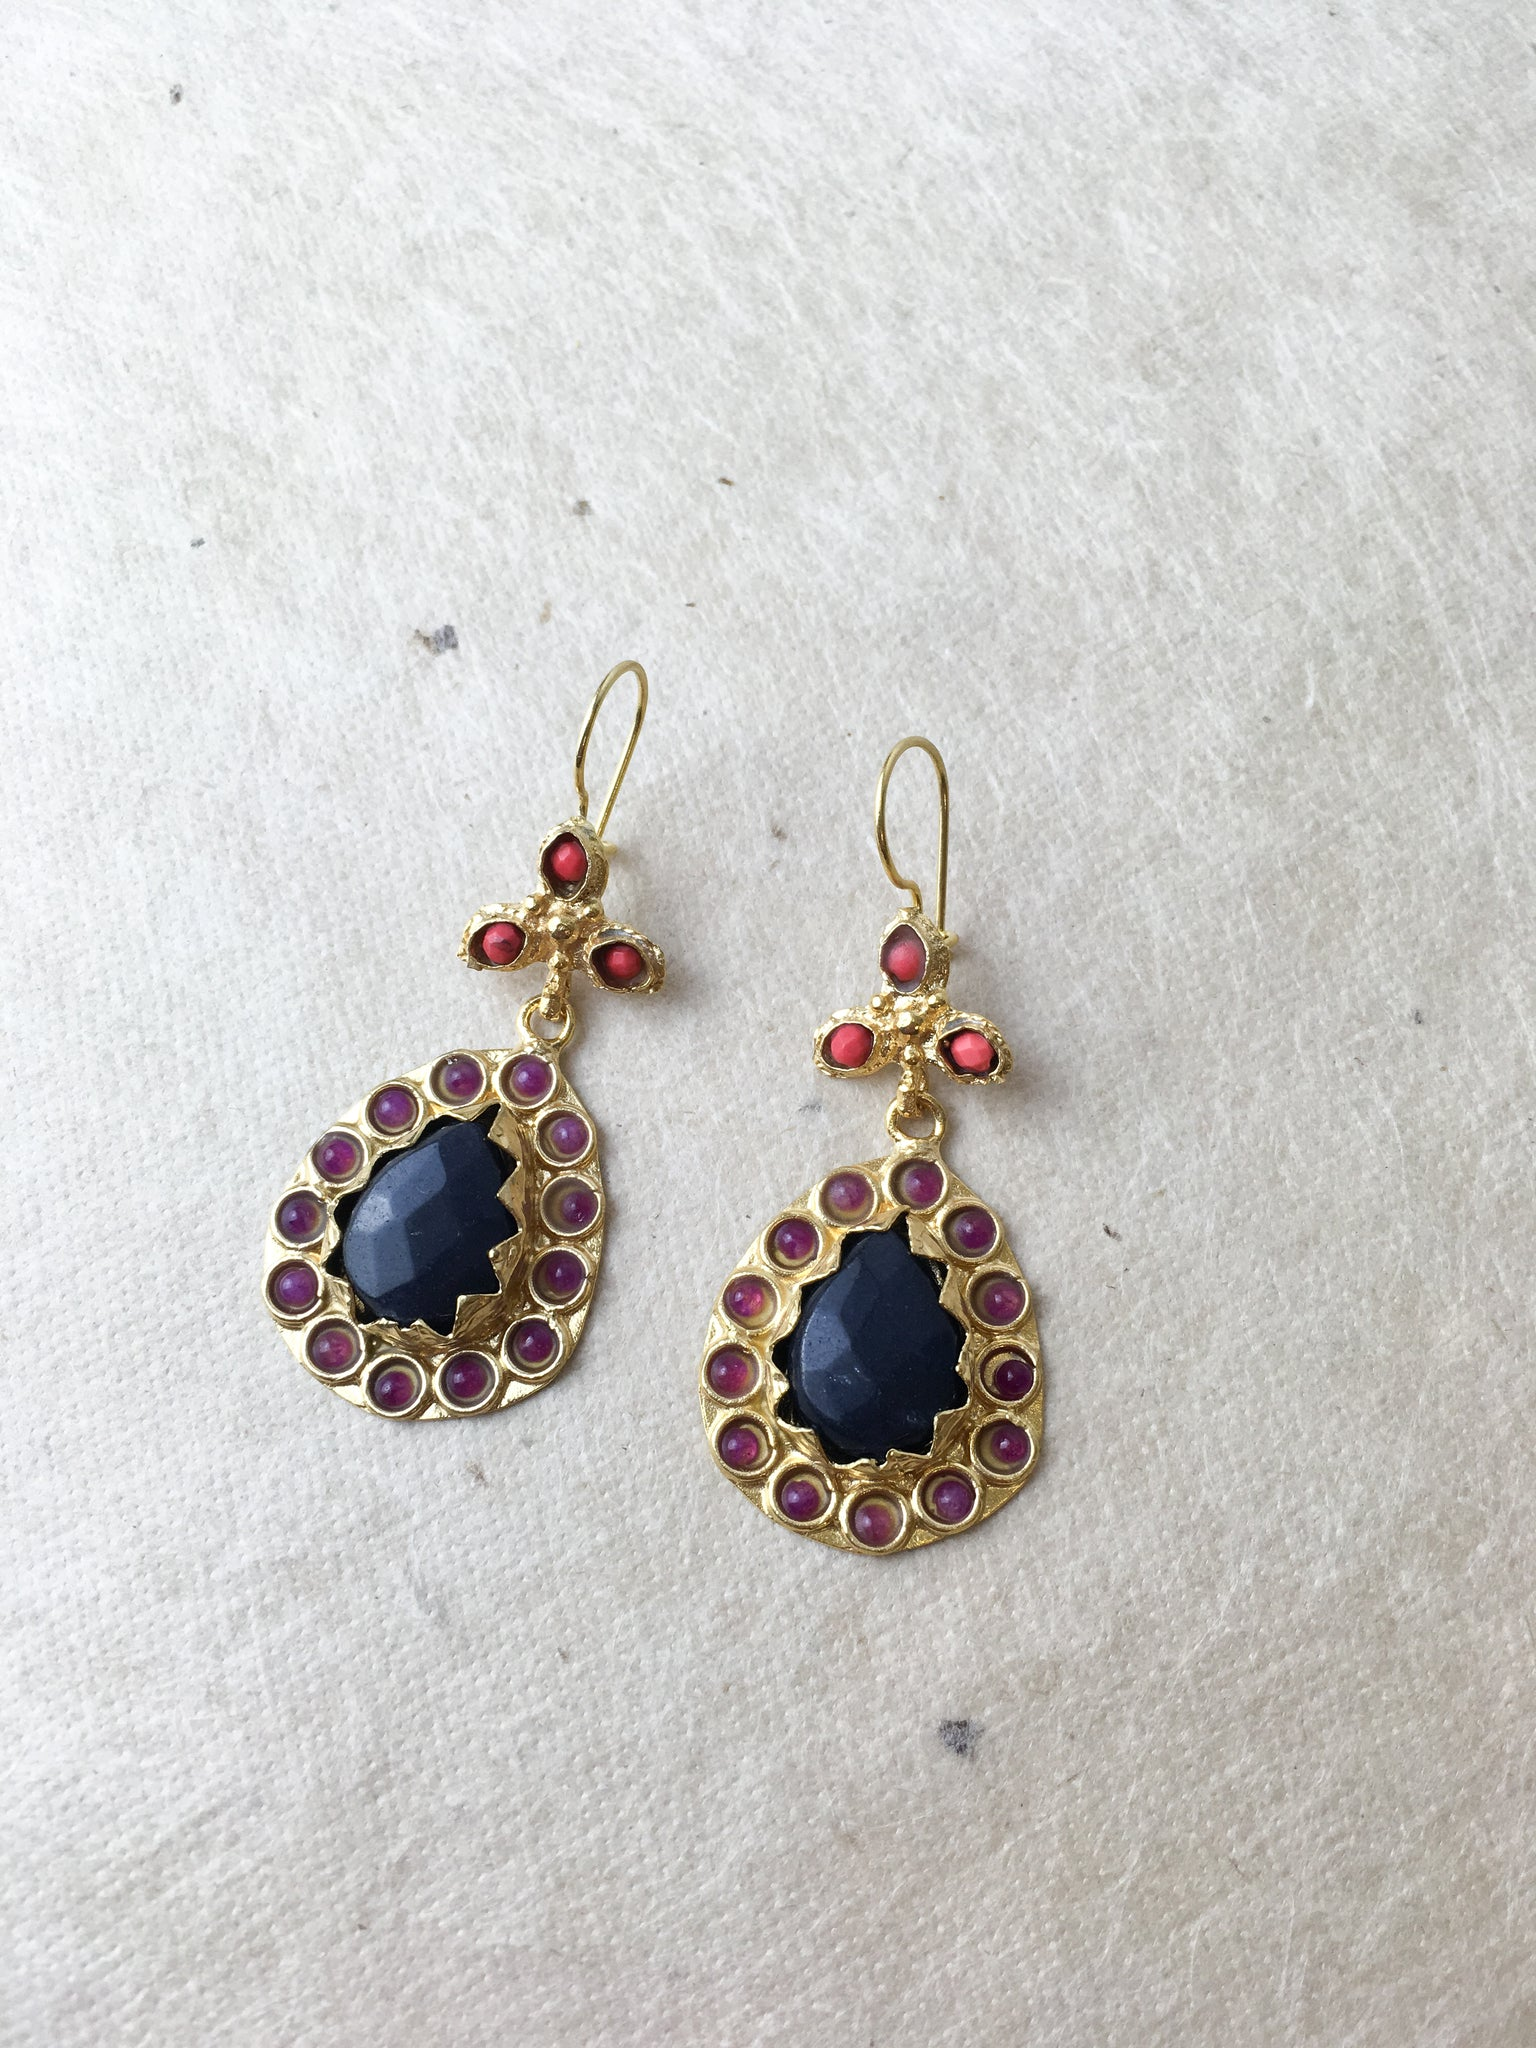 Ottoman Pendant earrings in Black and red 00-12